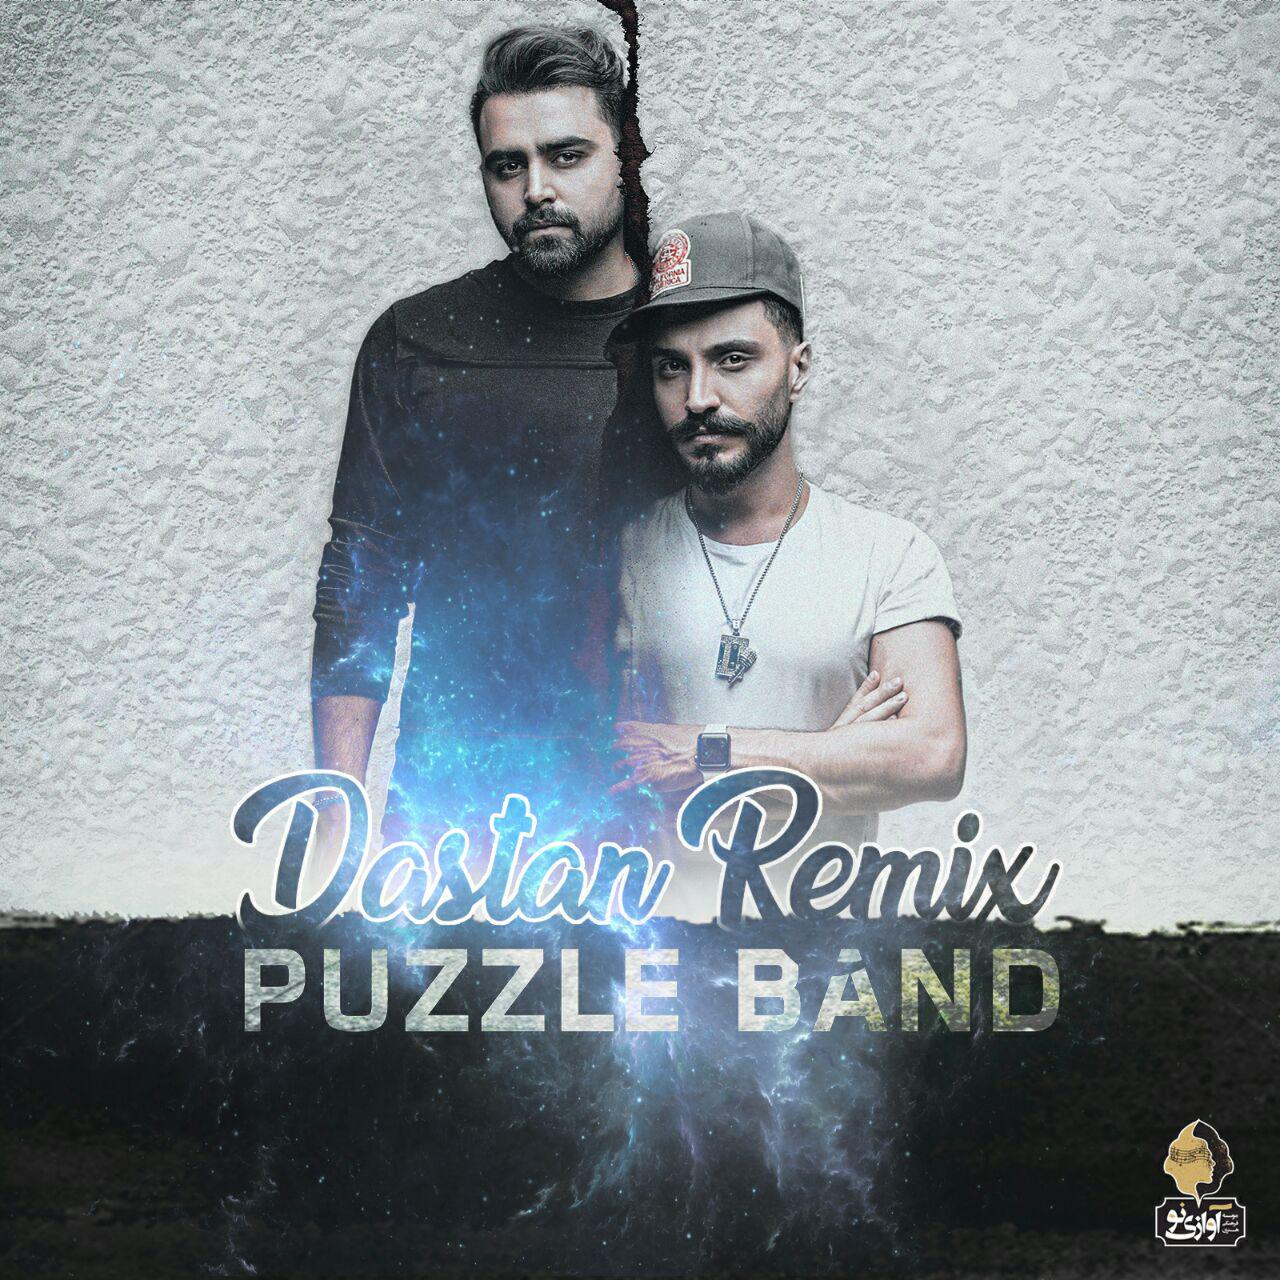 Puzzle Band – Dastan (Remix)